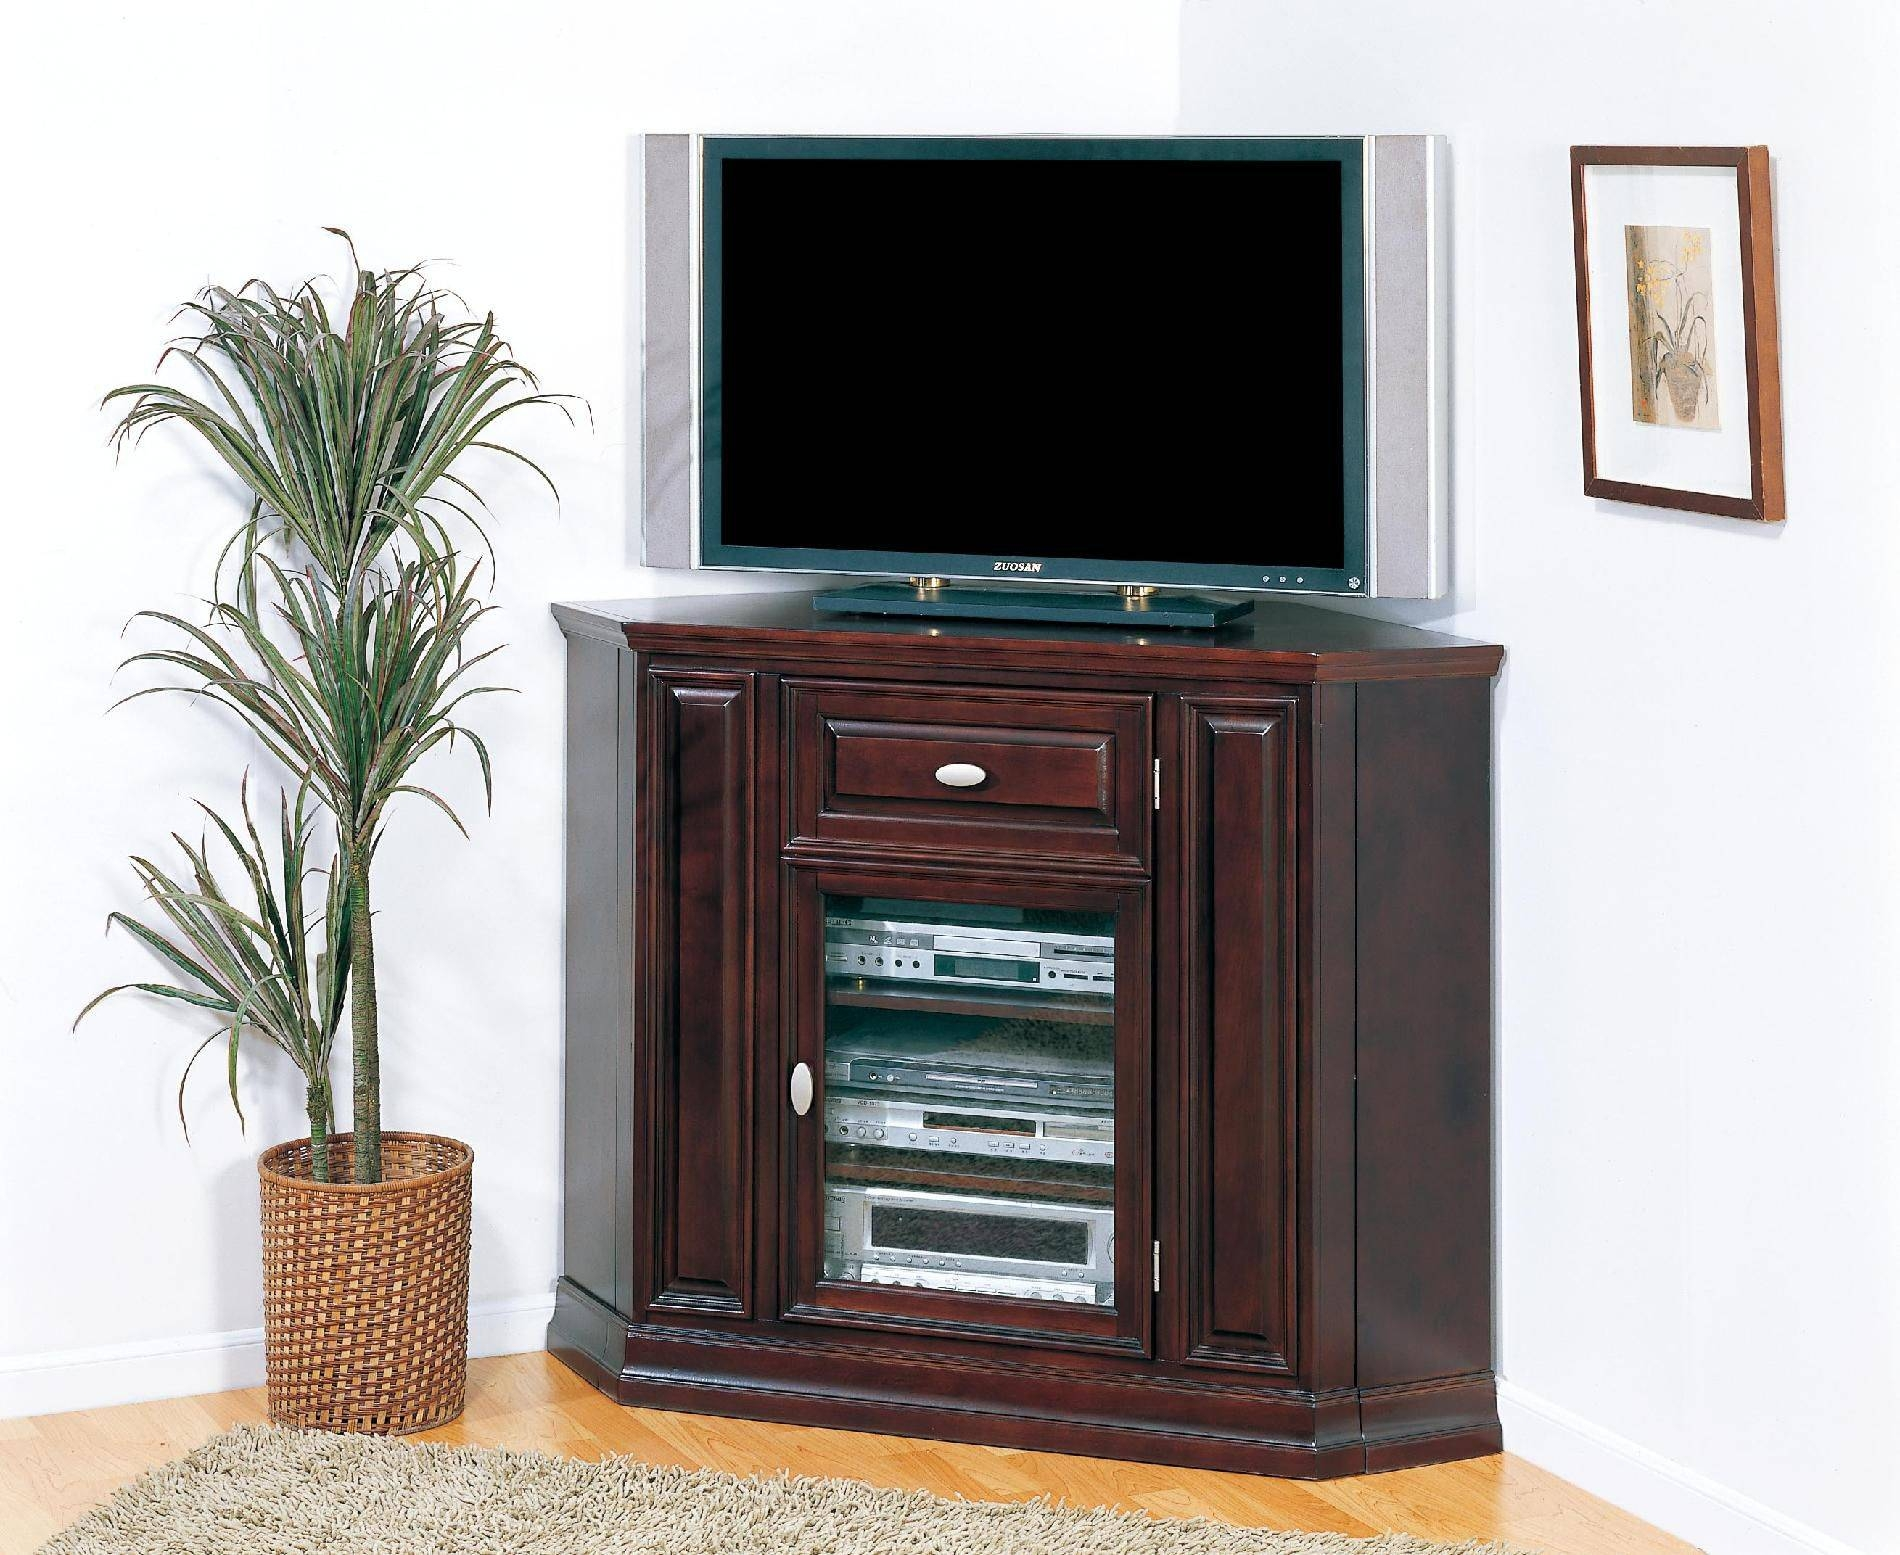 Furniture. Tall Dark Brown Wood Corner Tv Cabinet For Flat Screen pertaining to Corner Tv Cabinets With Glass Doors (Image 7 of 15)